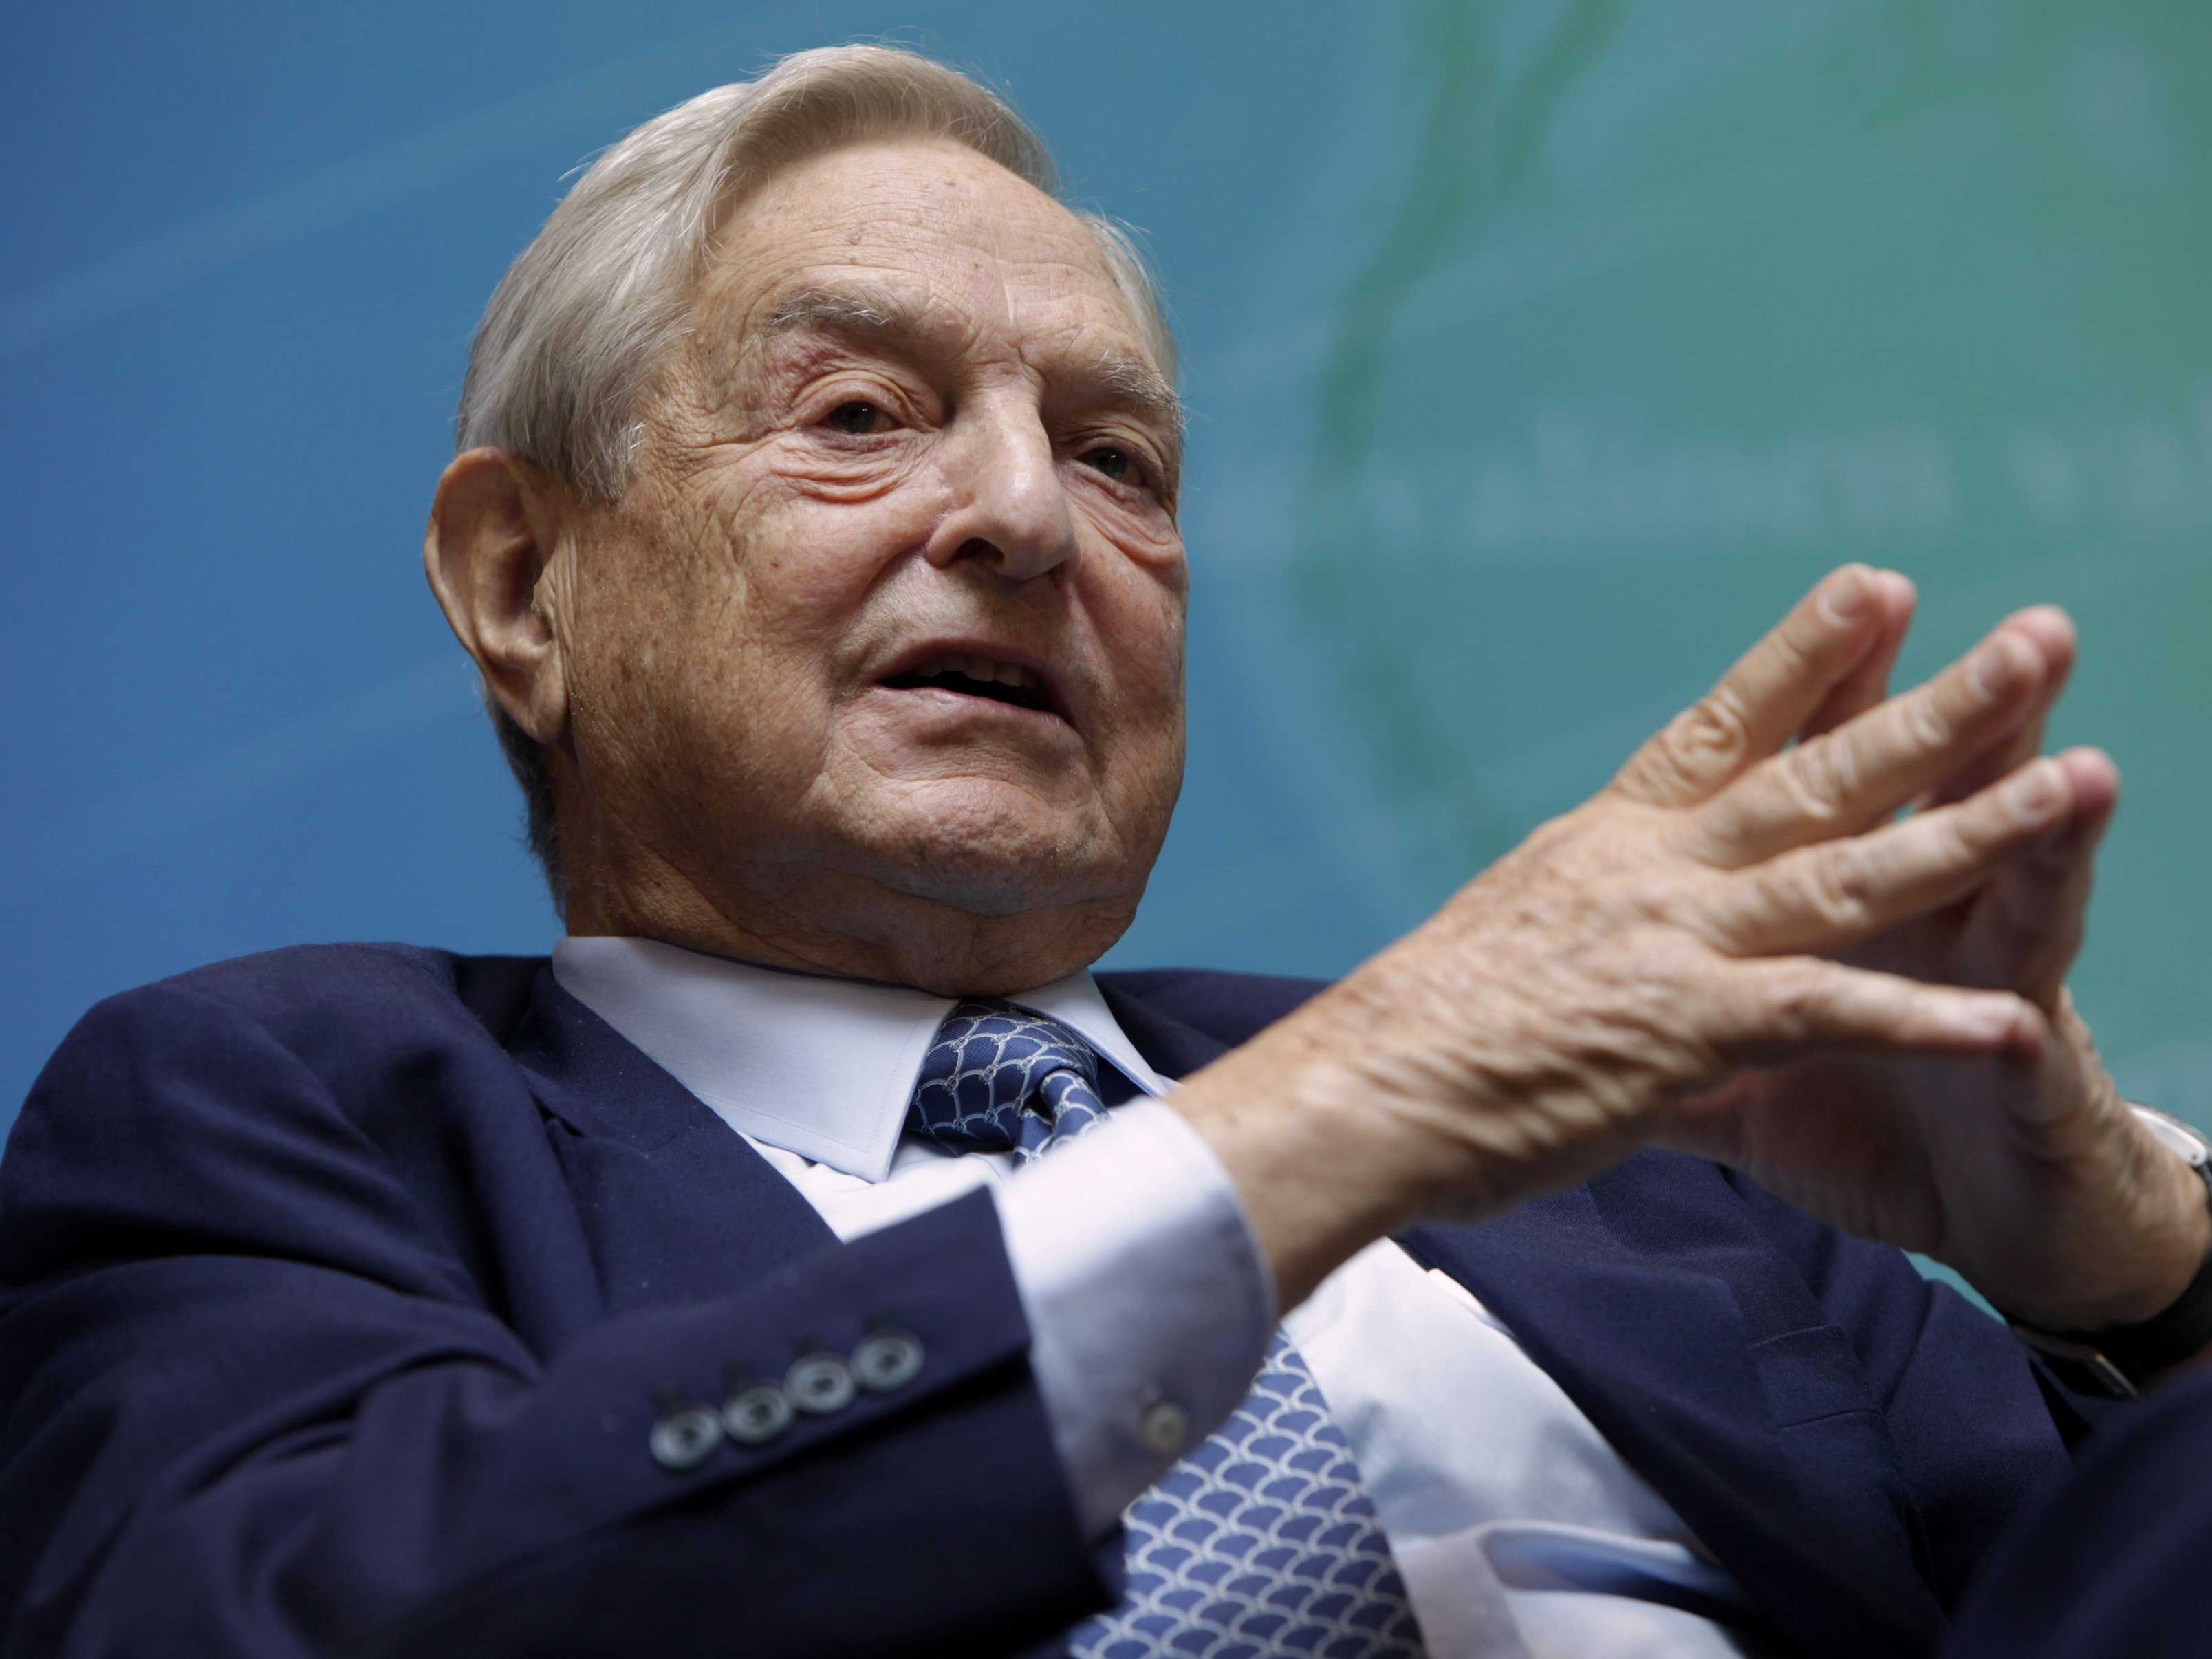 Top 3 Most Shocking Revelations From The Soros Hack